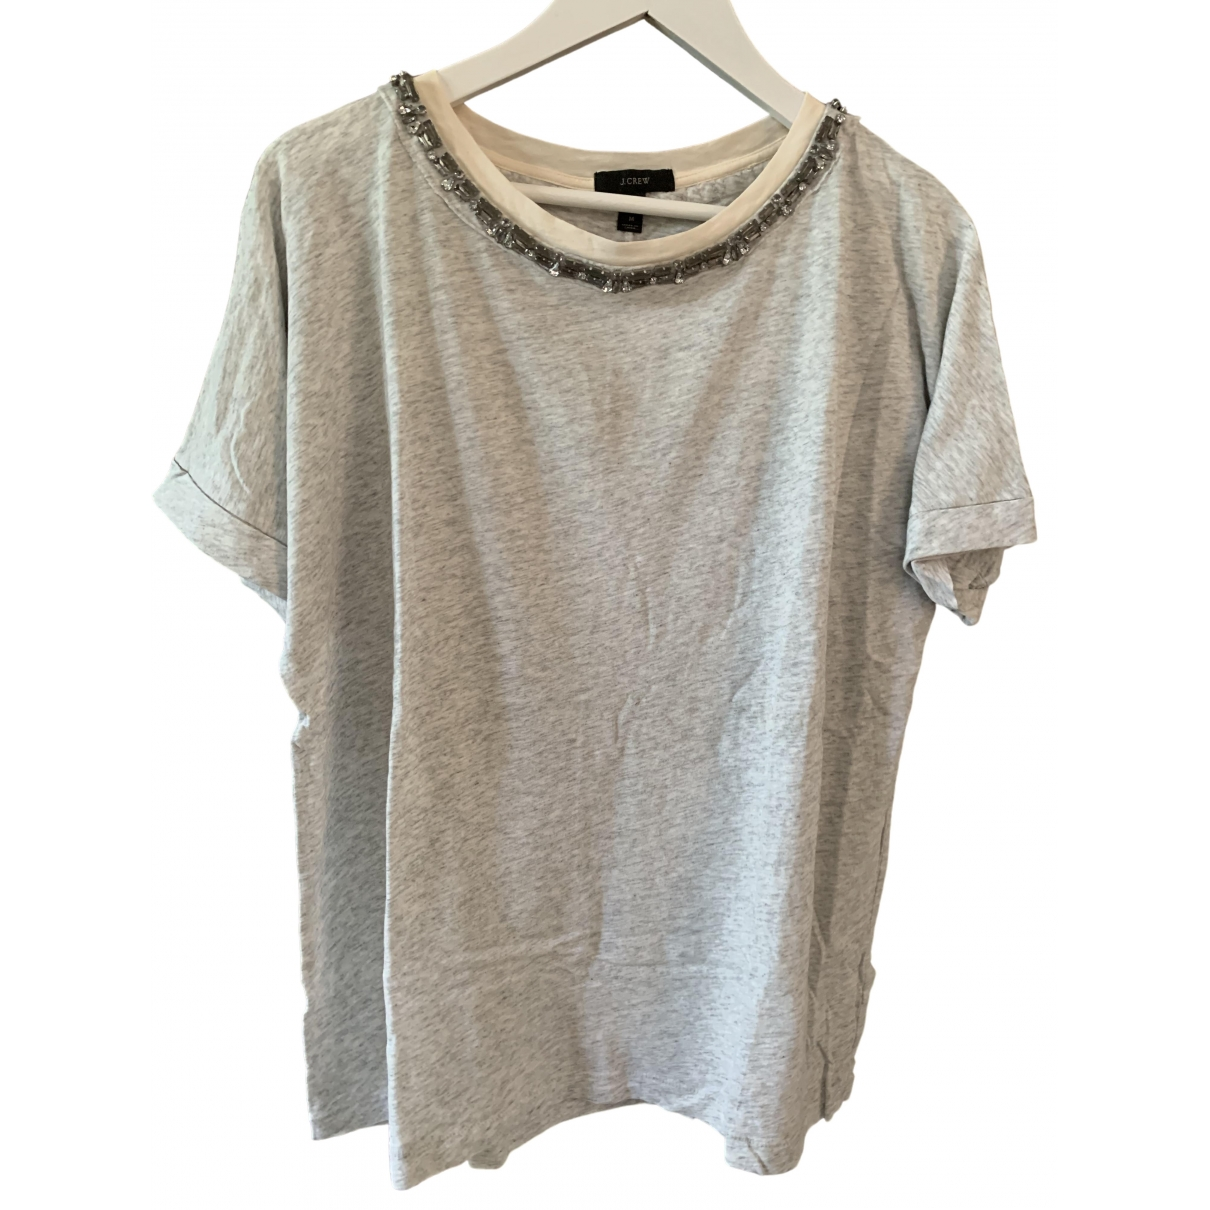 J.crew \N Top in  Grau Baumwolle